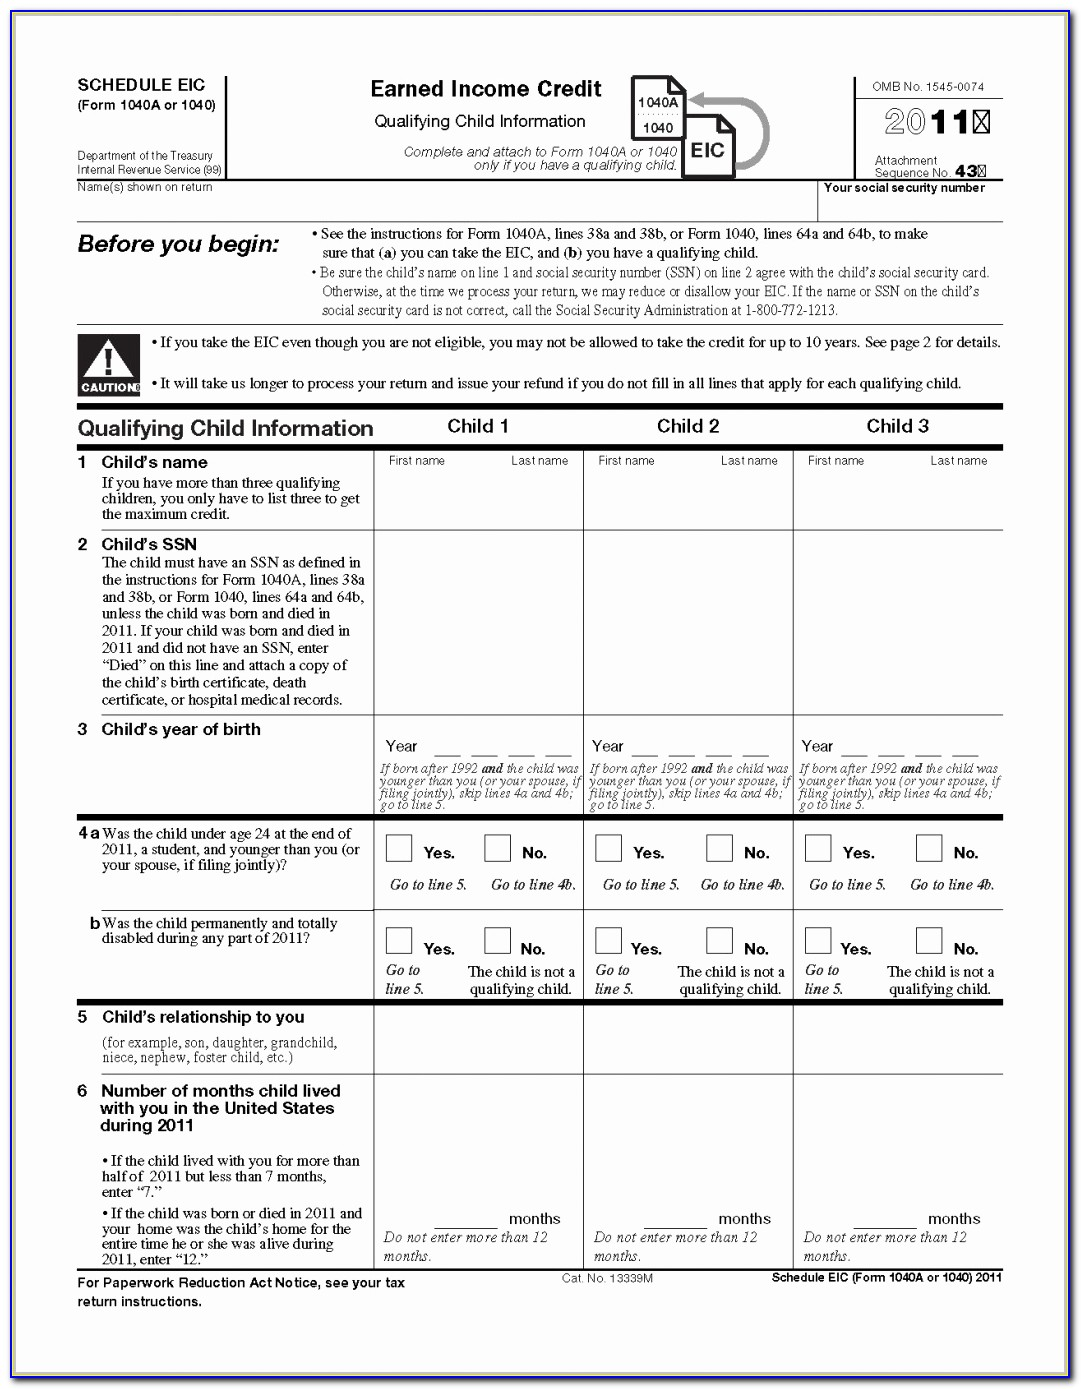 Form Instructions Awesome Irs Form Instructions